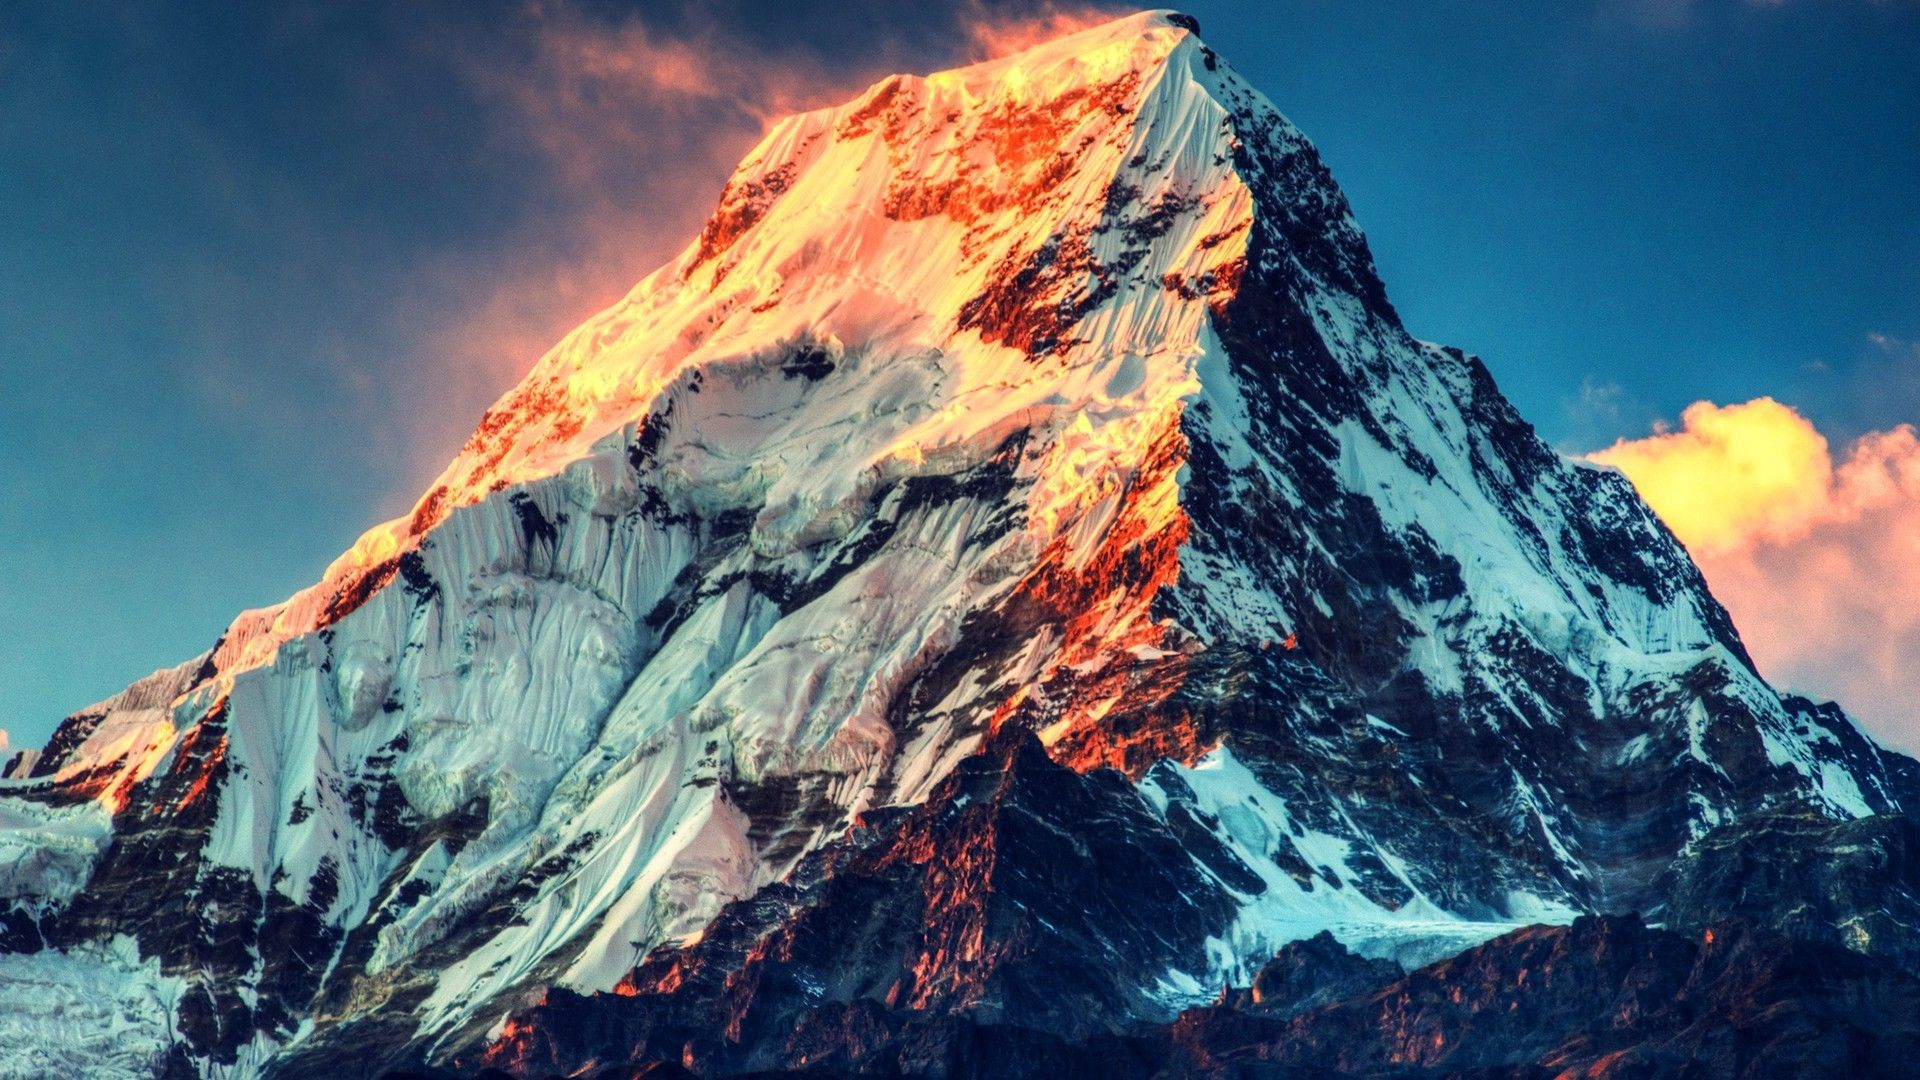 Pin by Cosmin Panfil on Landscape Photography | Snow mountain, Nepal